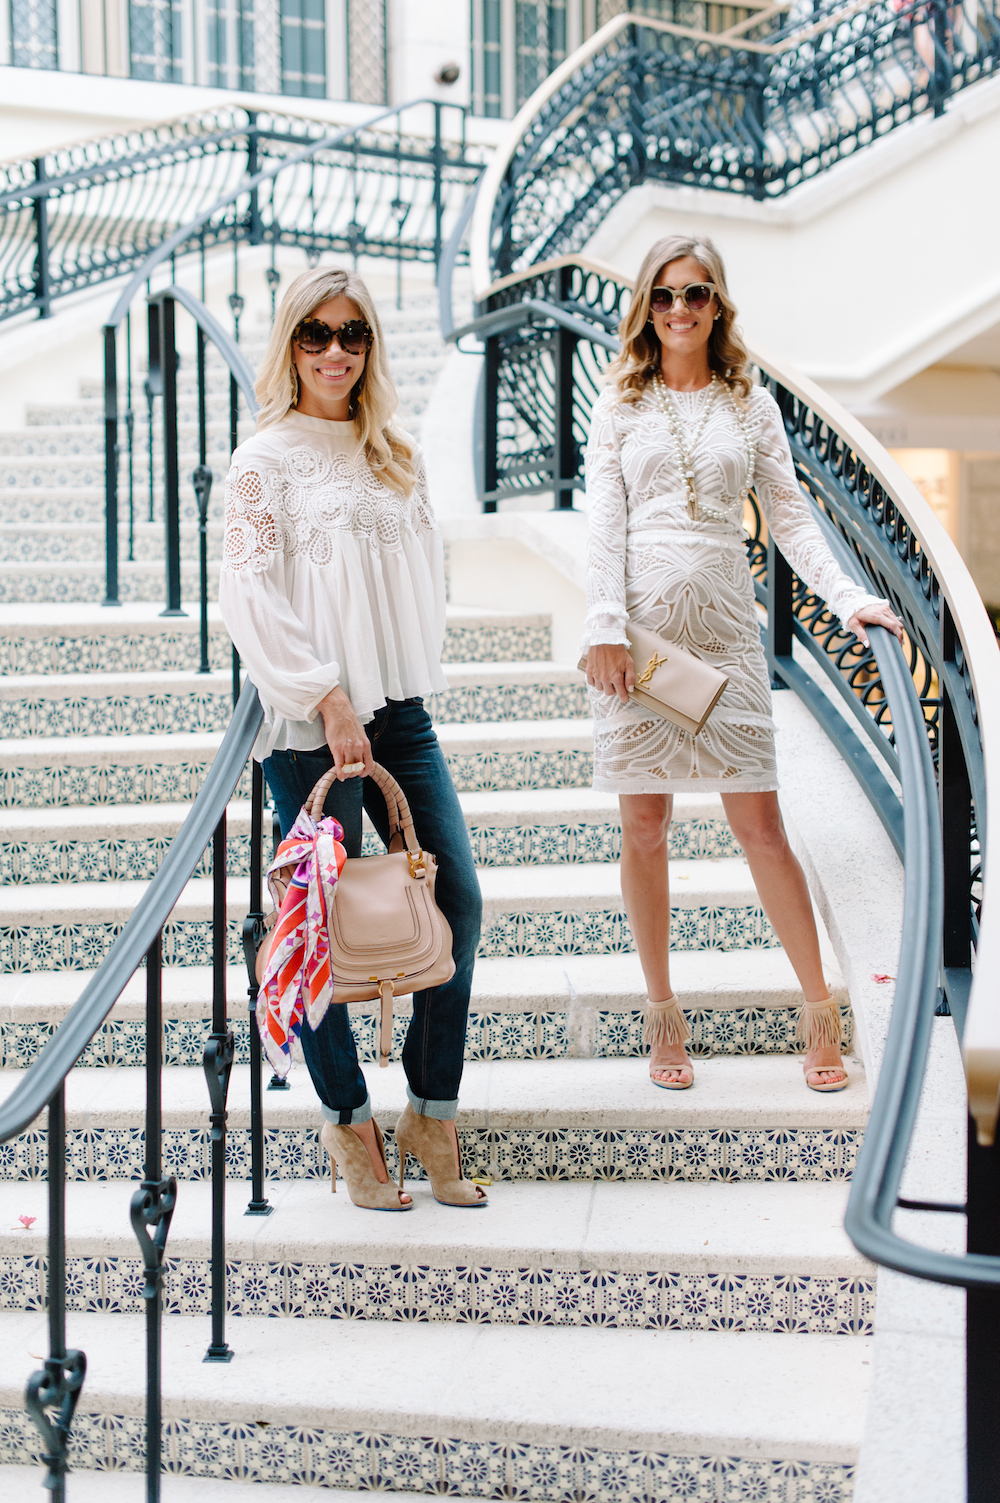 white_lace_dress_blouse_jeans_fringe_heels_clutch_handbag_booties_sunglasses_scarf